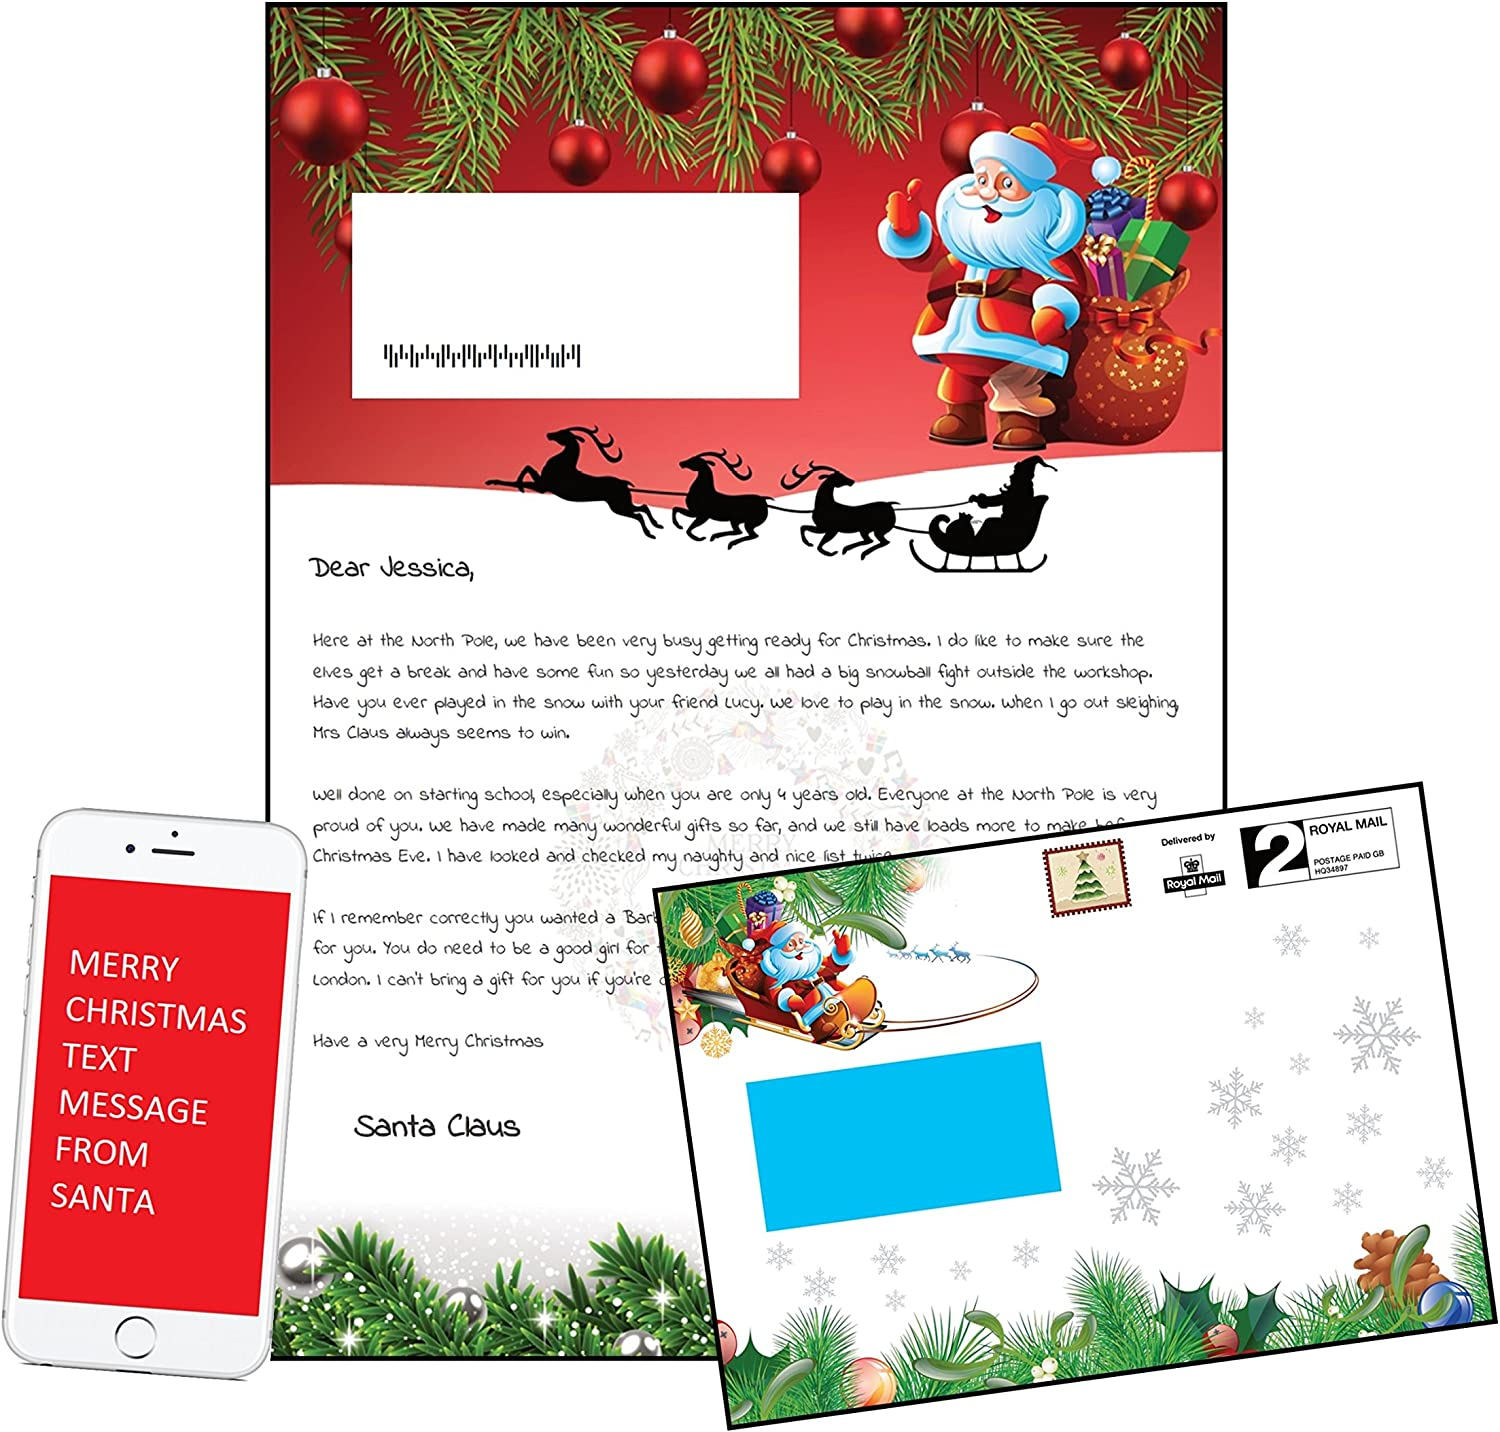 Letter From Santa Personalised In A Festive Christmas Envelope Free Text From Santa Red Design Amazon Co Uk Kitchen Home